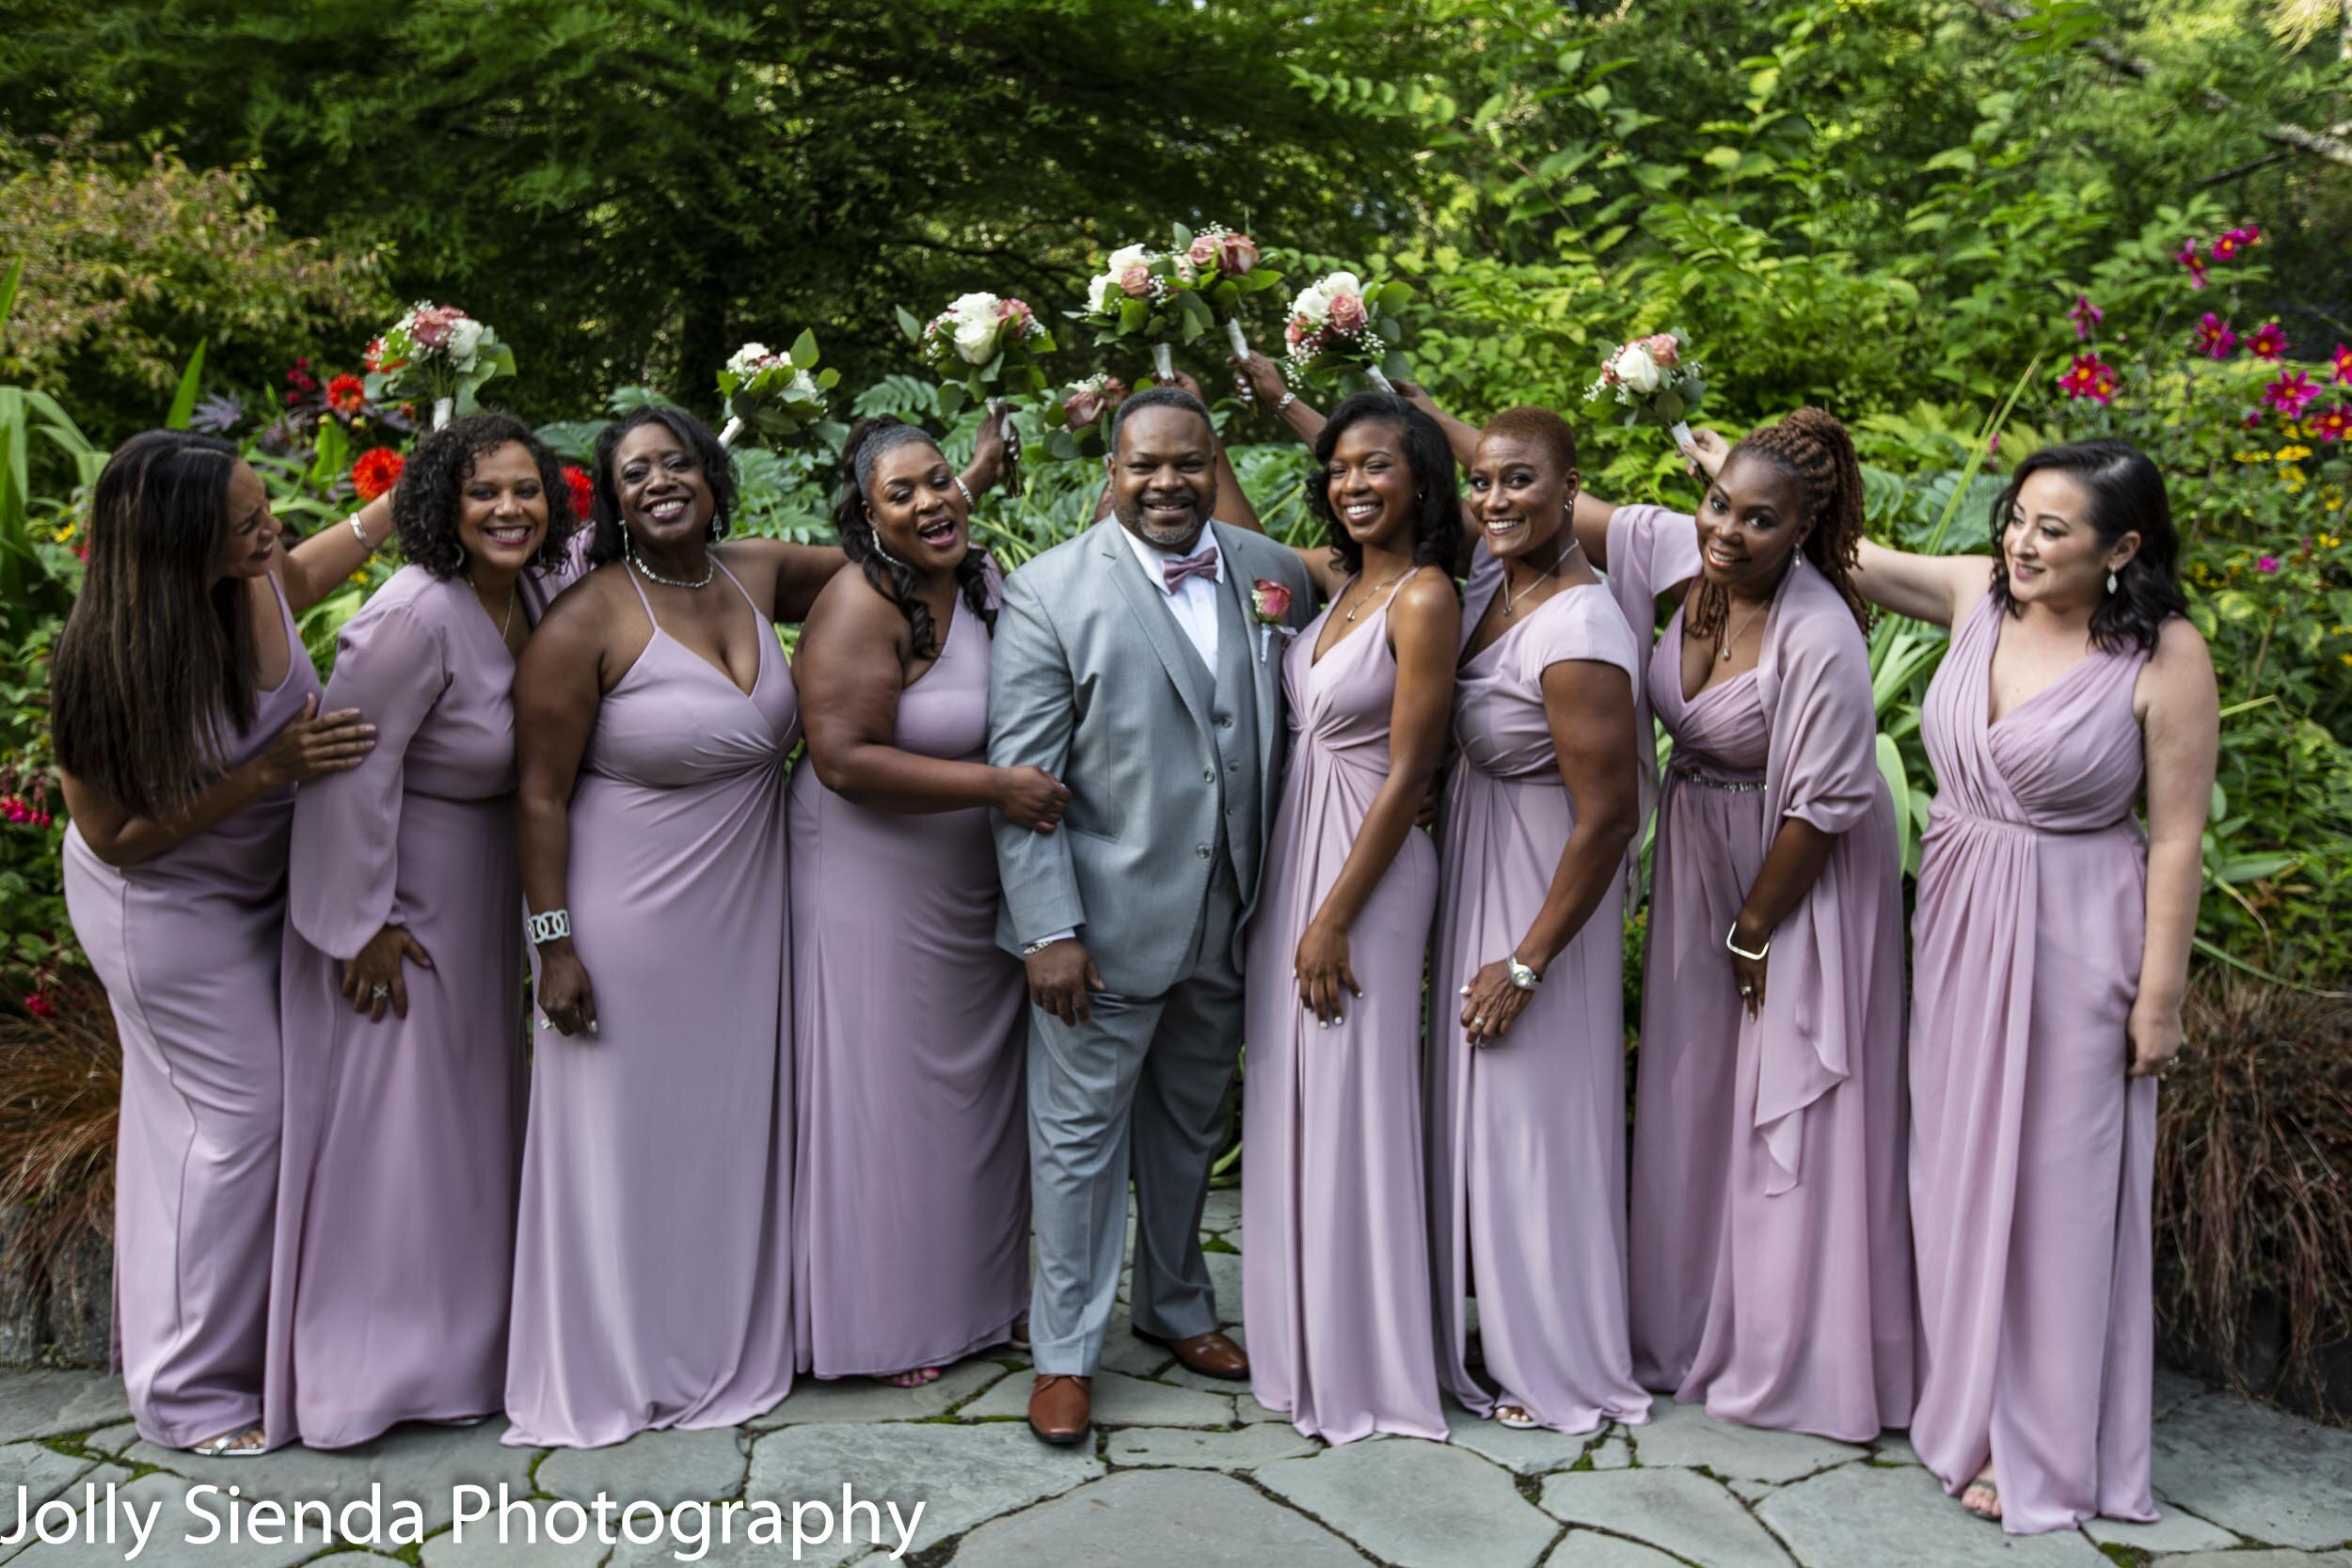 Jefferson Butler with the bridesmaids at Heronswood Garden by Jolly Sienda Photography